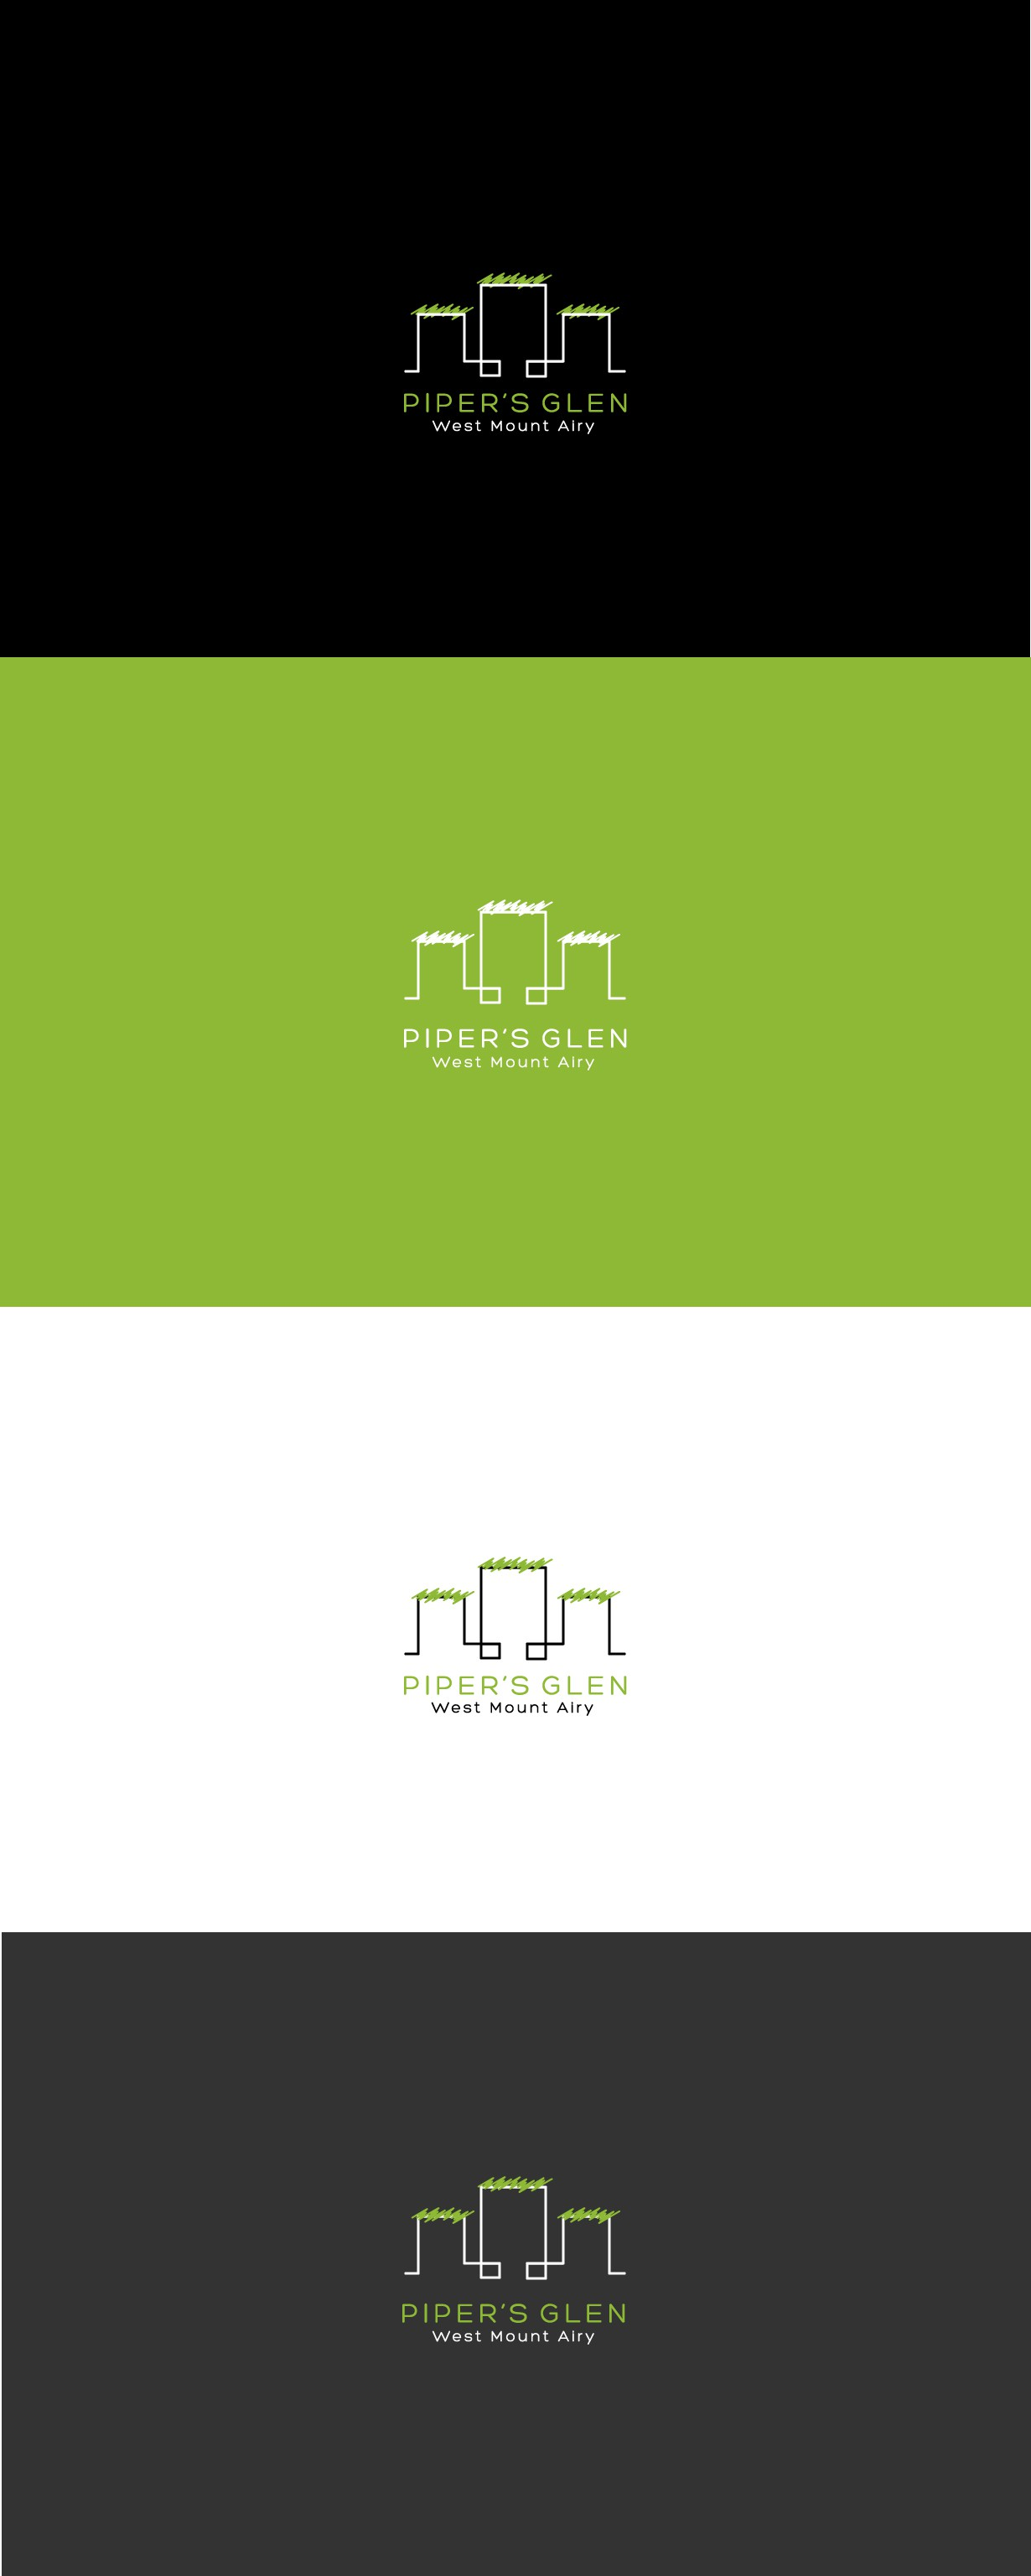 Create a simple visual representation of Green Sustainable Living for Piper's Glen